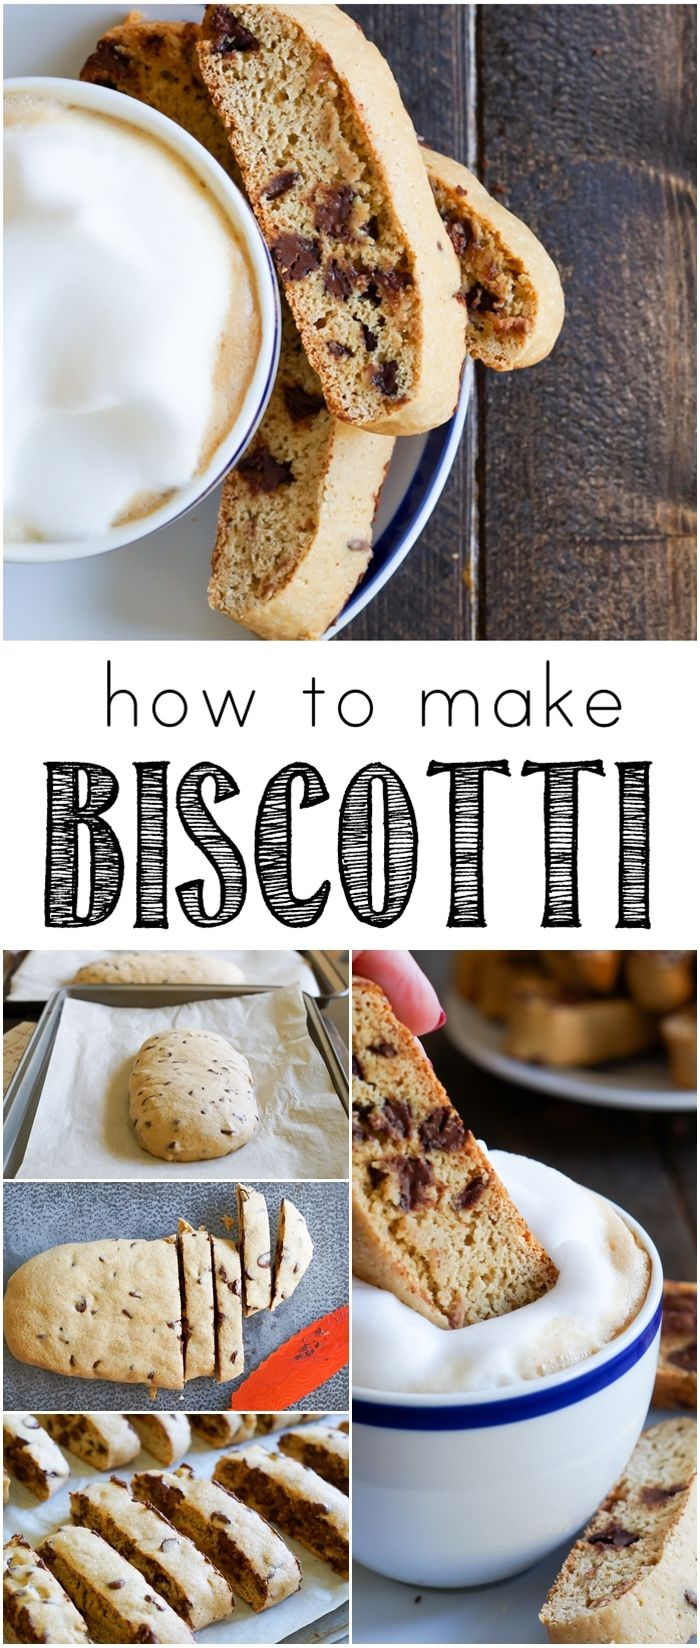 The Pioneer Woman Food & Friends Latest Post: How to Make Biscotti    Y'all. Please tell me you're biscotti lovers like I am. Did you know that they're actually easy...and FUN...to make at home?Here are three things I love about biscotti: they're adaptable to just about   http://bakeat350.blogspot.com/2016/11/the-pioneer-woman-food-friends-latest-post-how-to-make-biscotti.html